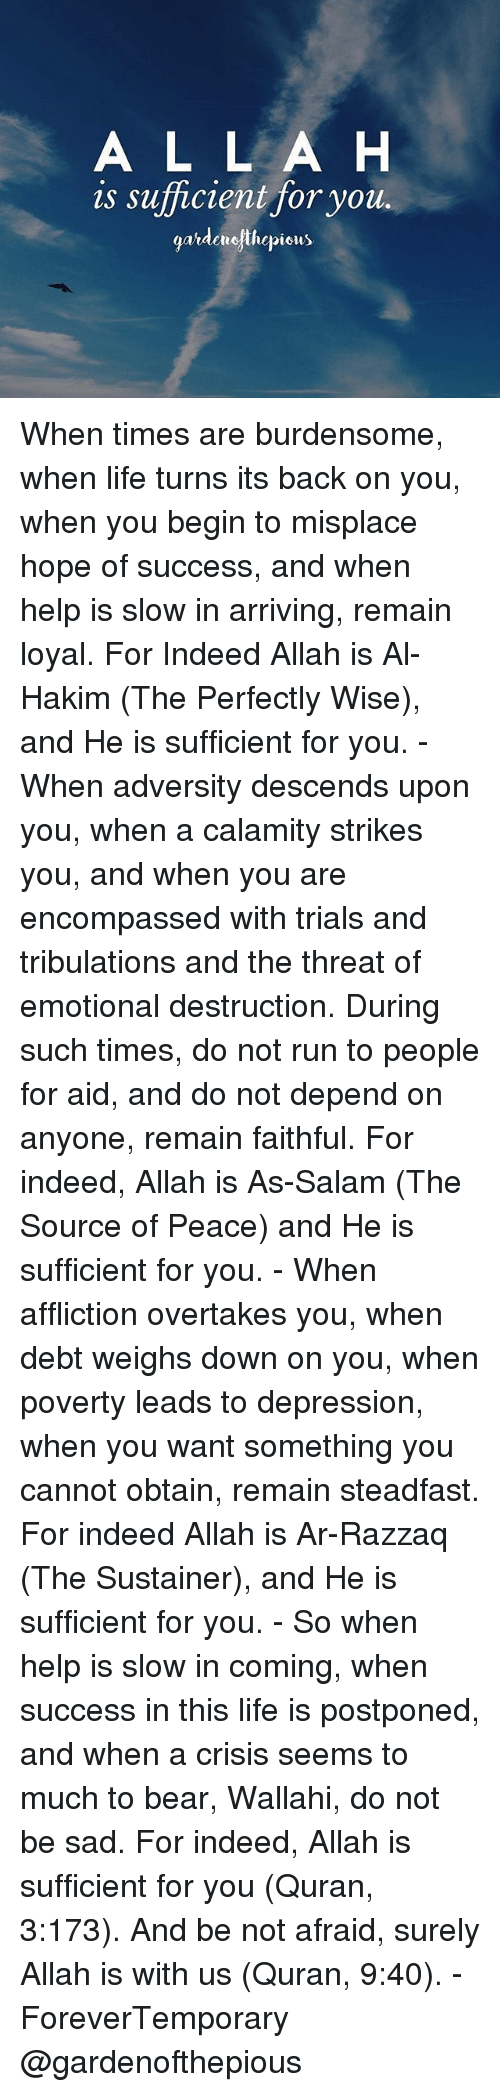 Salamence: A L L A H  is sufficient for you  gatdemejthepiets When times are burdensome, when life turns its back on you, when you begin to misplace hope of success, and when help is slow in arriving, remain loyal. For Indeed Allah is Al-Hakim (The Perfectly Wise), and He is sufficient for you. - When adversity descends upon you, when a calamity strikes you, and when you are encompassed with trials and tribulations and the threat of emotional destruction. During such times, do not run to people for aid, and do not depend on anyone, remain faithful. For indeed, Allah is As-Salam (The Source of Peace) and He is sufficient for you. - When affliction overtakes you, when debt weighs down on you, when poverty leads to depression, when you want something you cannot obtain, remain steadfast. For indeed Allah is Ar-Razzaq (The Sustainer), and He is sufficient for you. - So when help is slow in coming, when success in this life is postponed, and when a crisis seems to much to bear, Wallahi, do not be sad. For indeed, Allah is sufficient for you (Quran, 3:173). And be not afraid, surely Allah is with us (Quran, 9:40). - ForeverTemporary @gardenofthepious